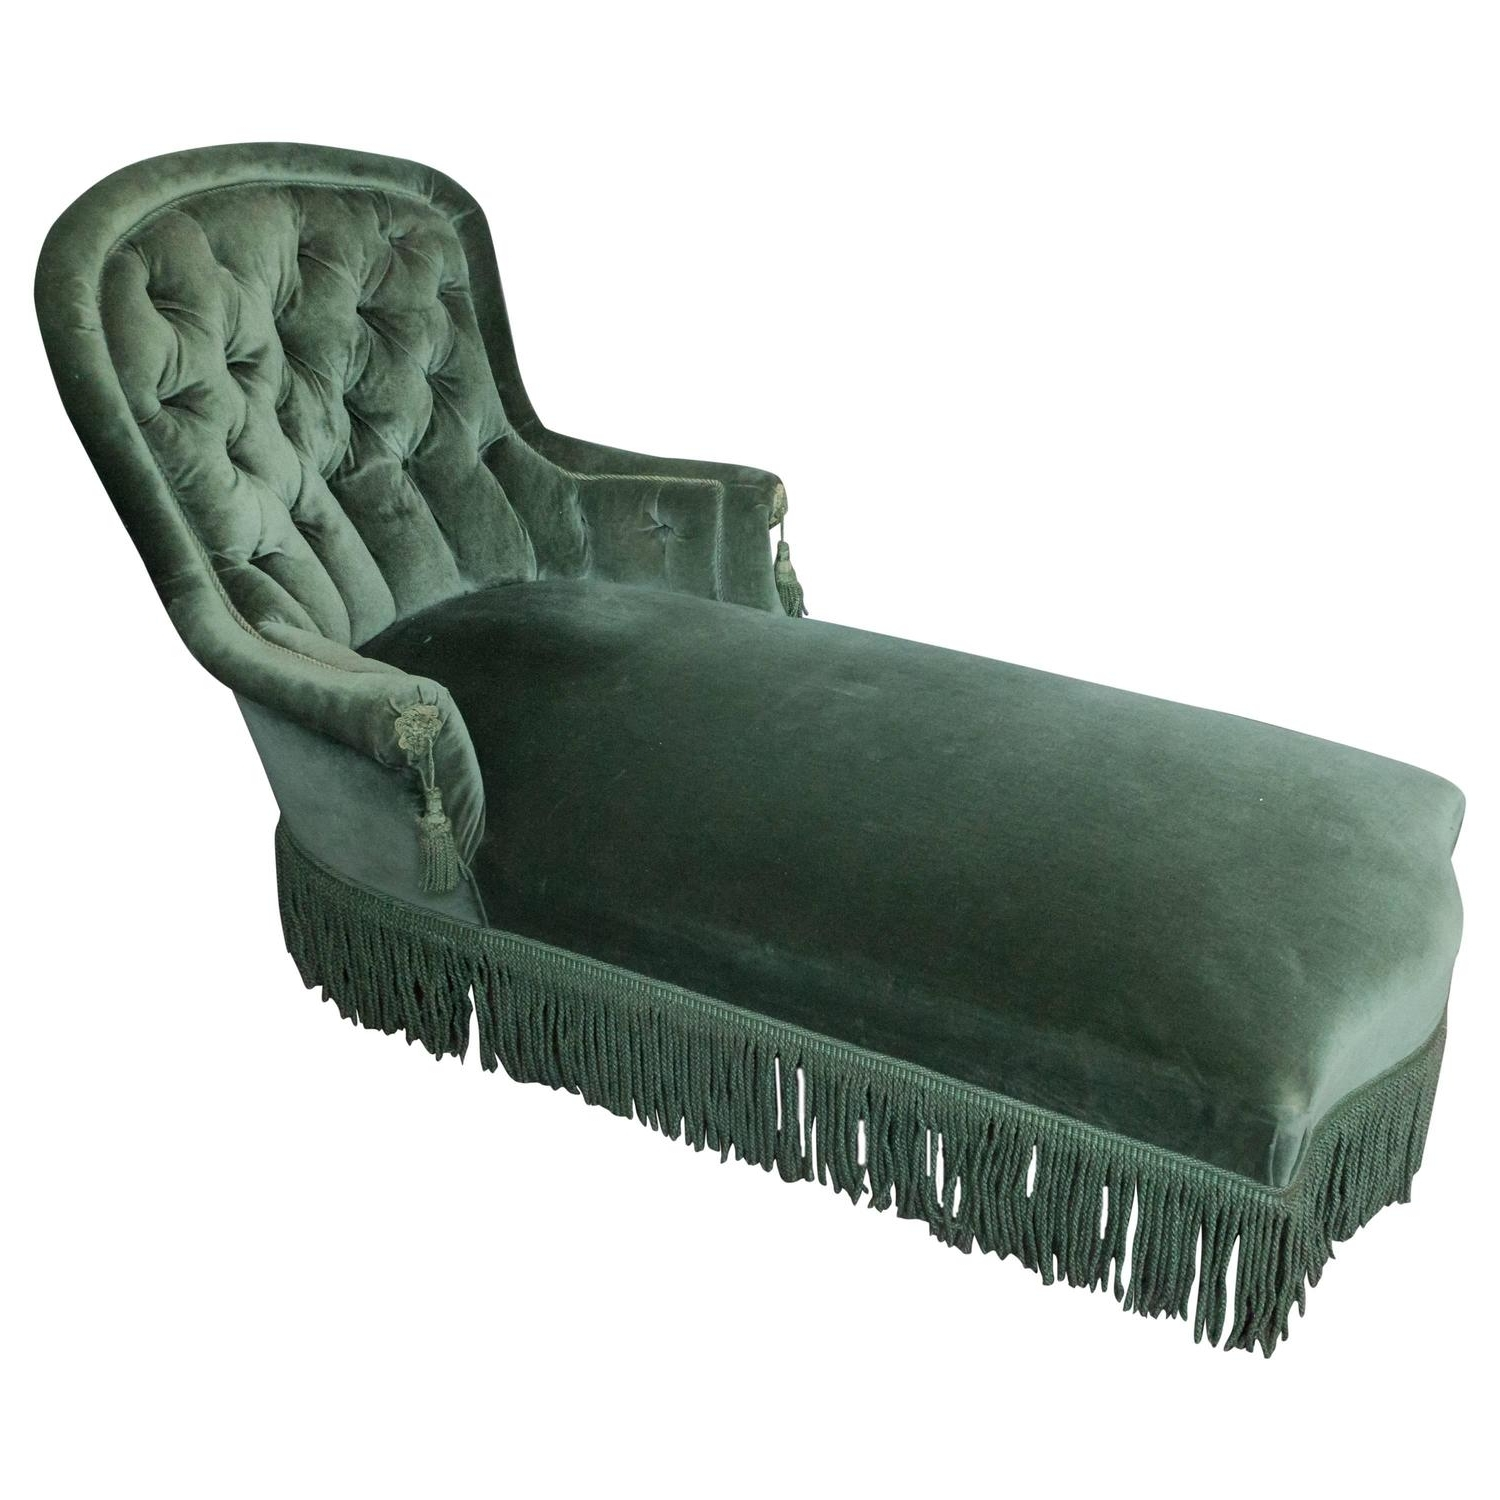 Green Chaise Lounges Pertaining To Well Liked Elegant French Chaise Longue In Green Velvet At 1Stdibs (View 15 of 15)